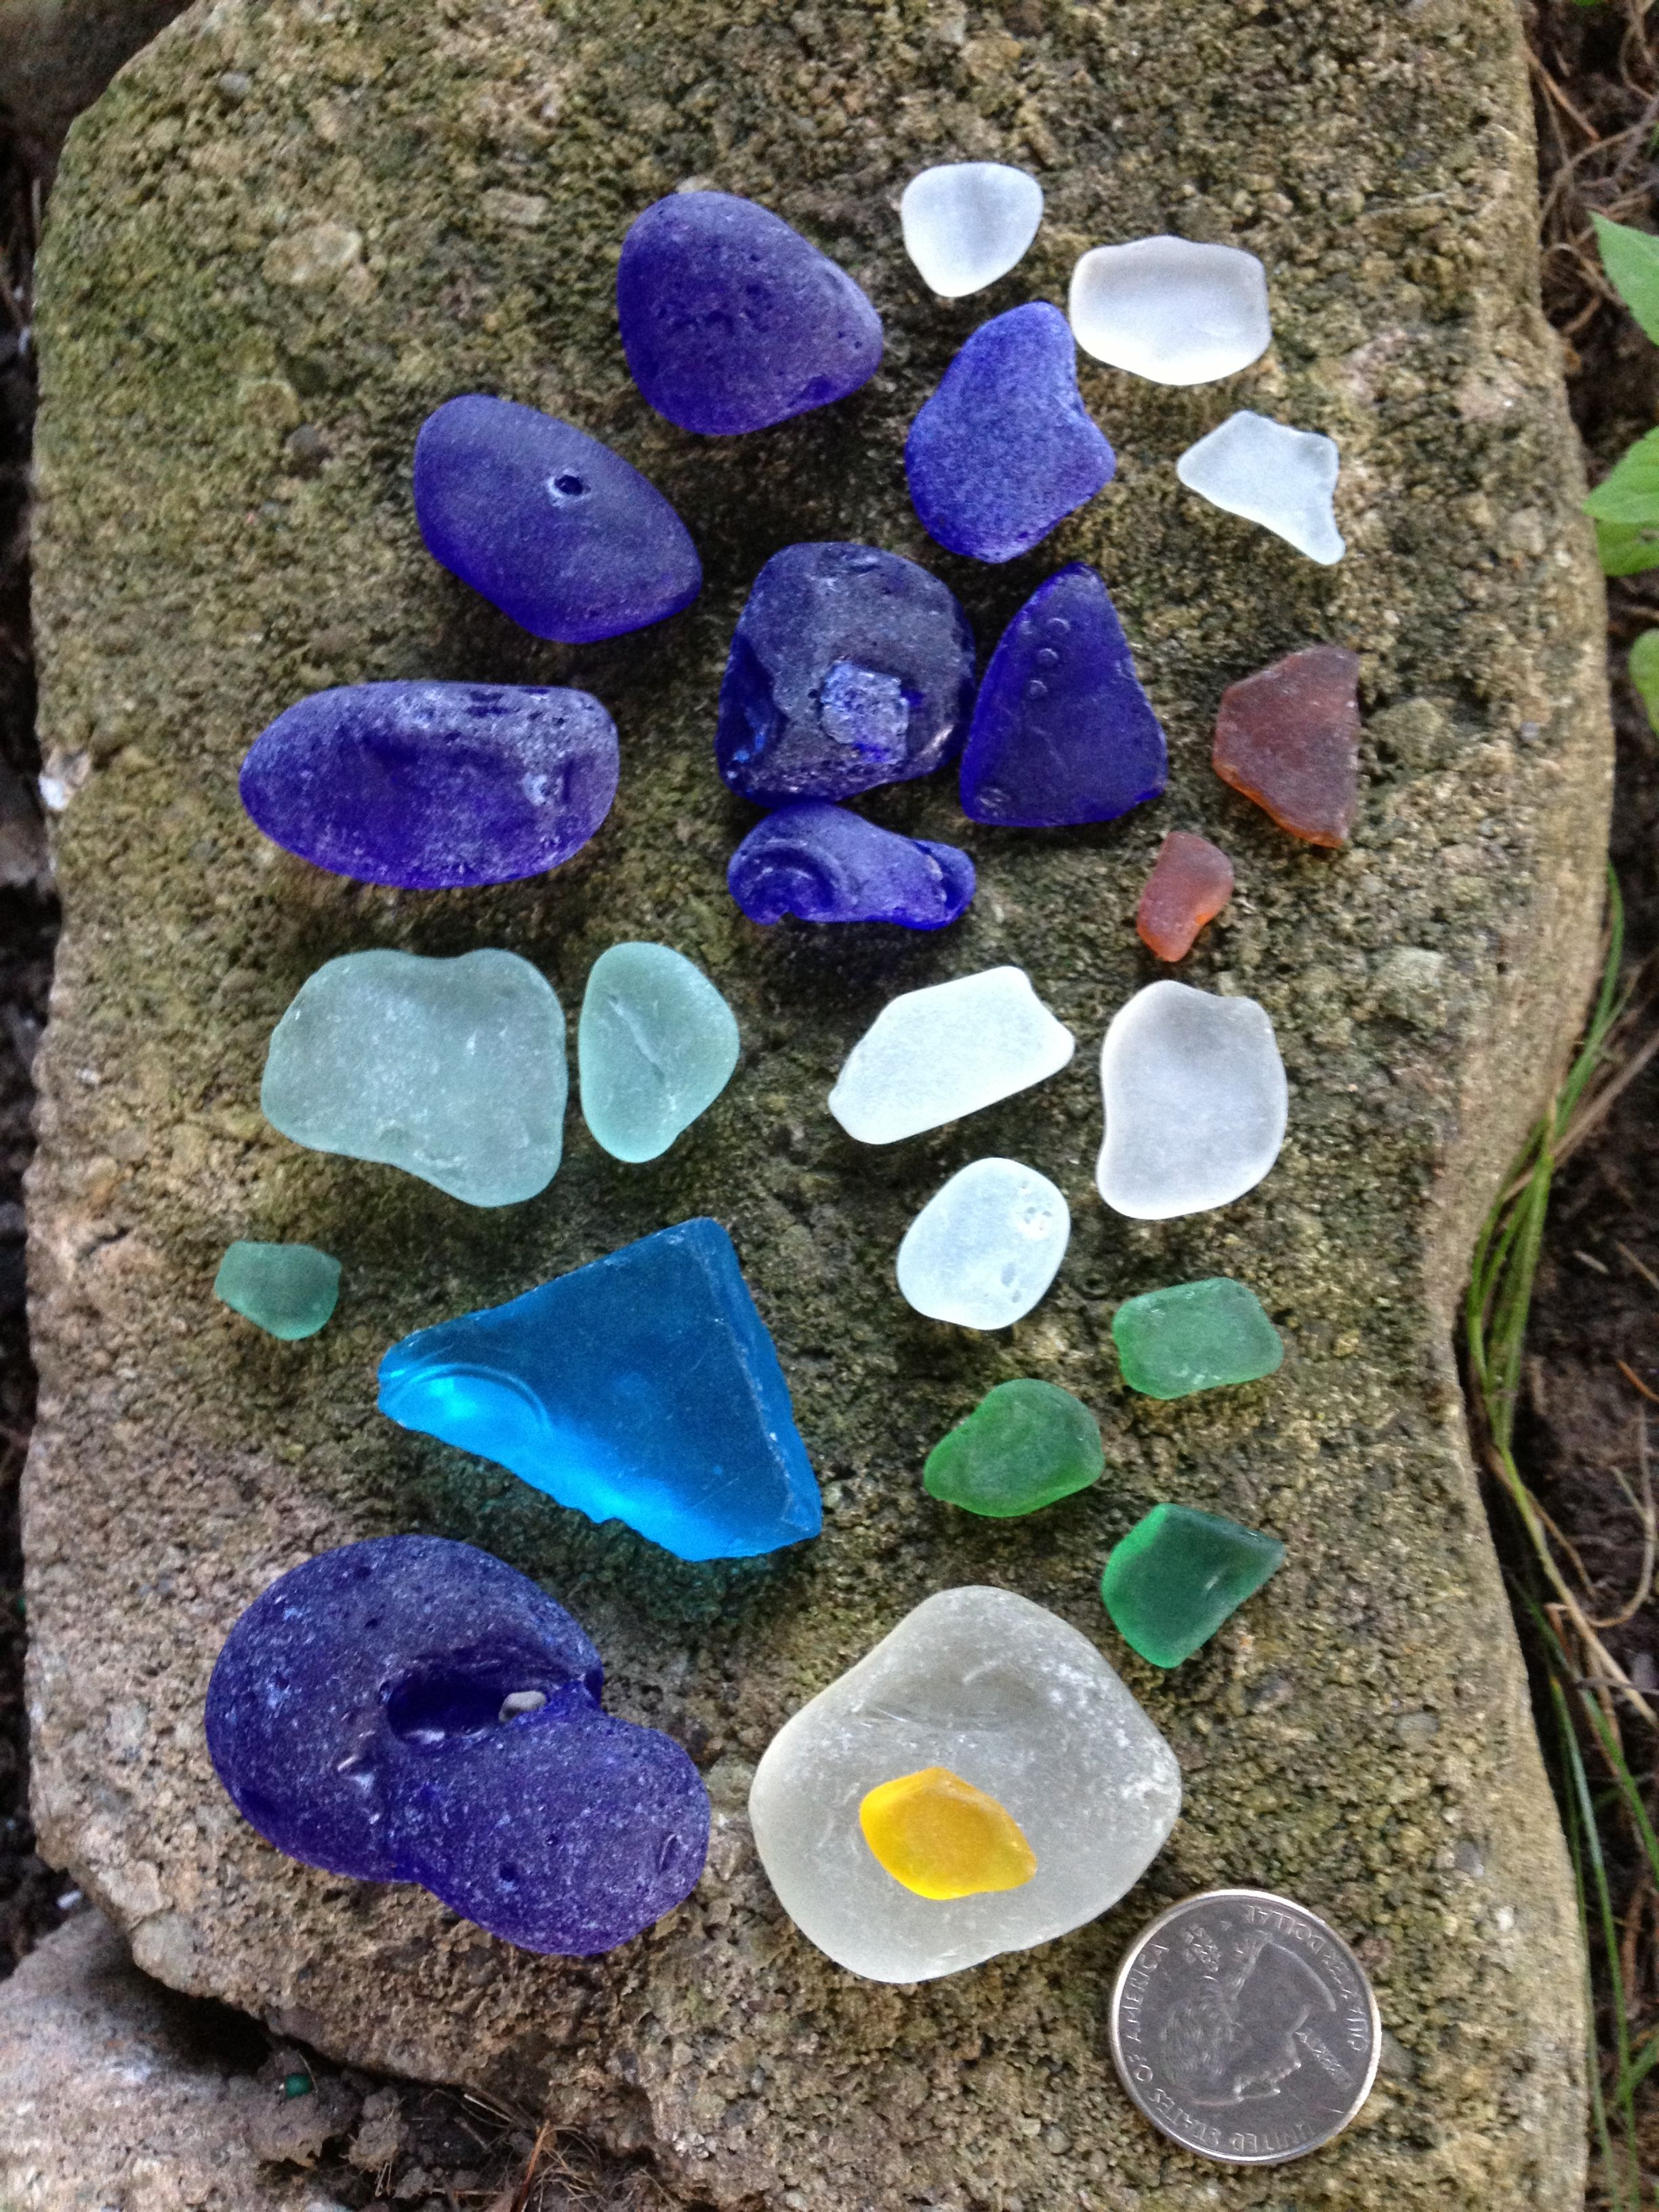 Lake Erie Beach Glass finds Geneva the Lake